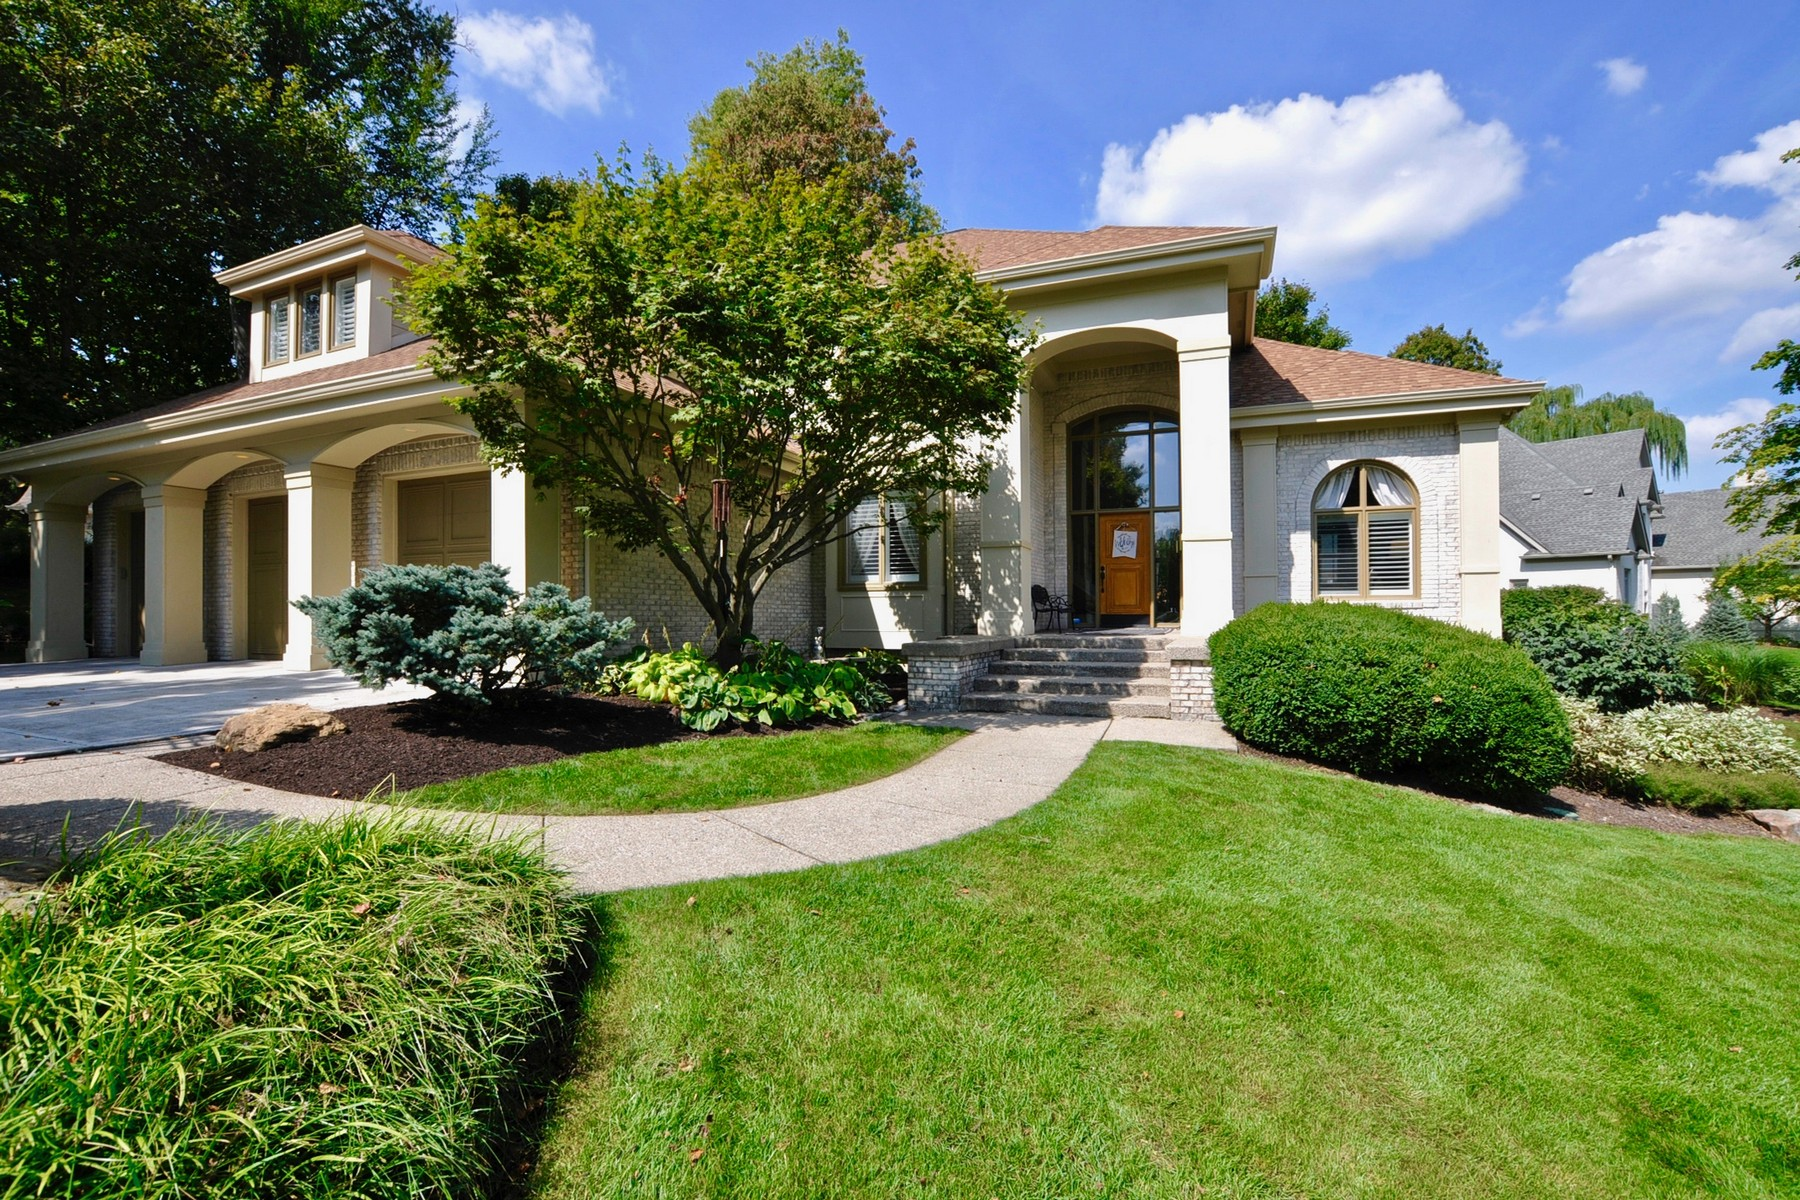 Villa per Vendita alle ore Gorgeous Windpointe Setting 4916 Waterstone Way, Carmel, Indiana, 46033 Stati Uniti